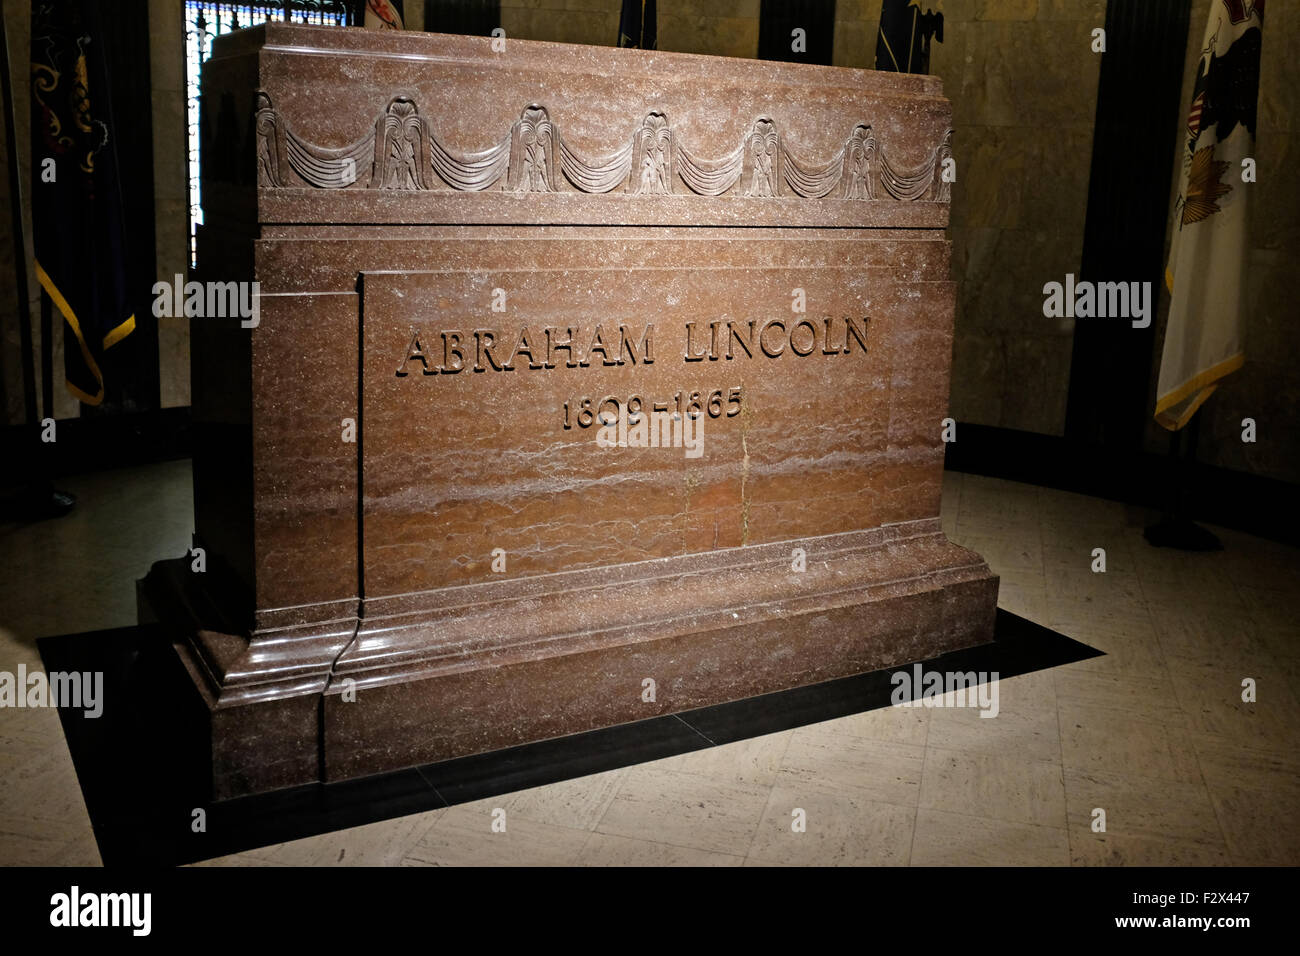 Tomb of Abraham Lincoln in Springfield, Illinois - Stock Image